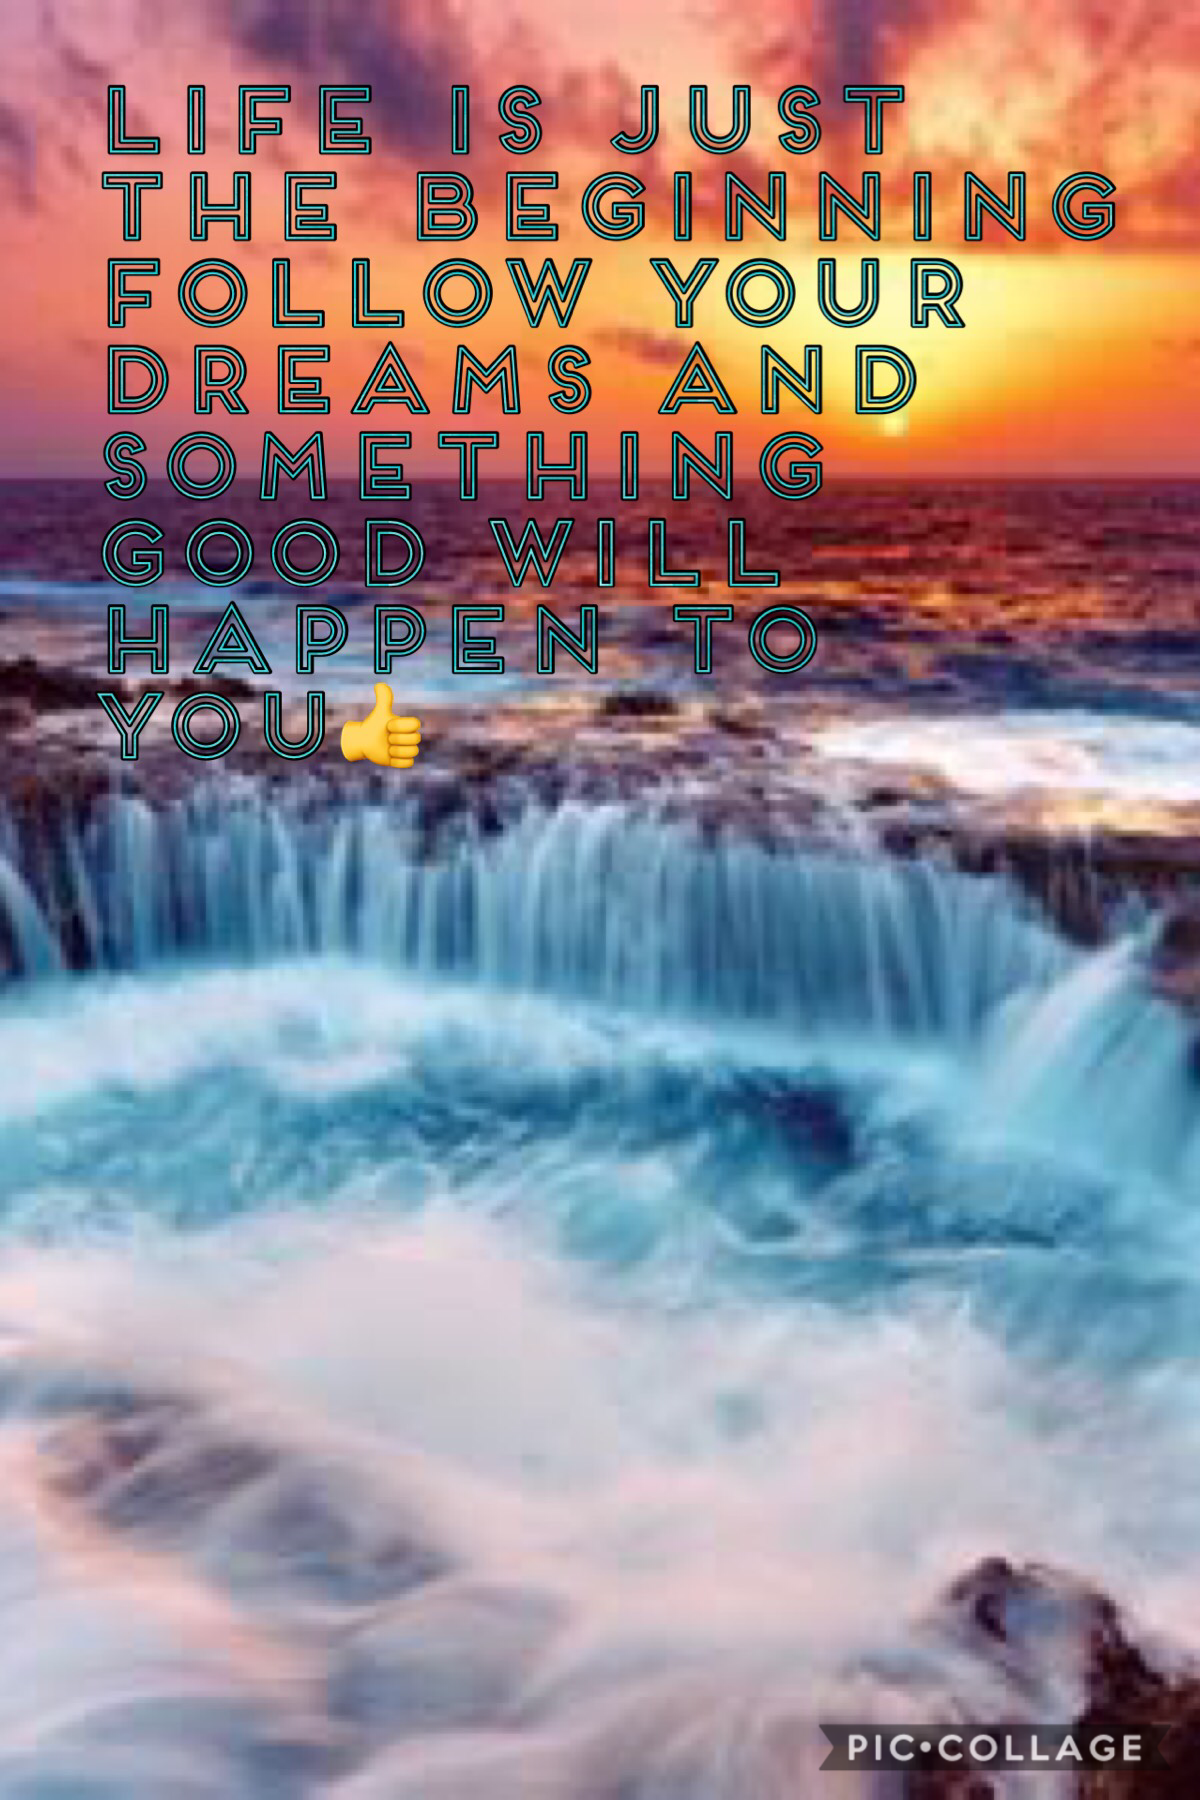 DREAM BIG DREAMS AND YOU WILL SUCCEED.